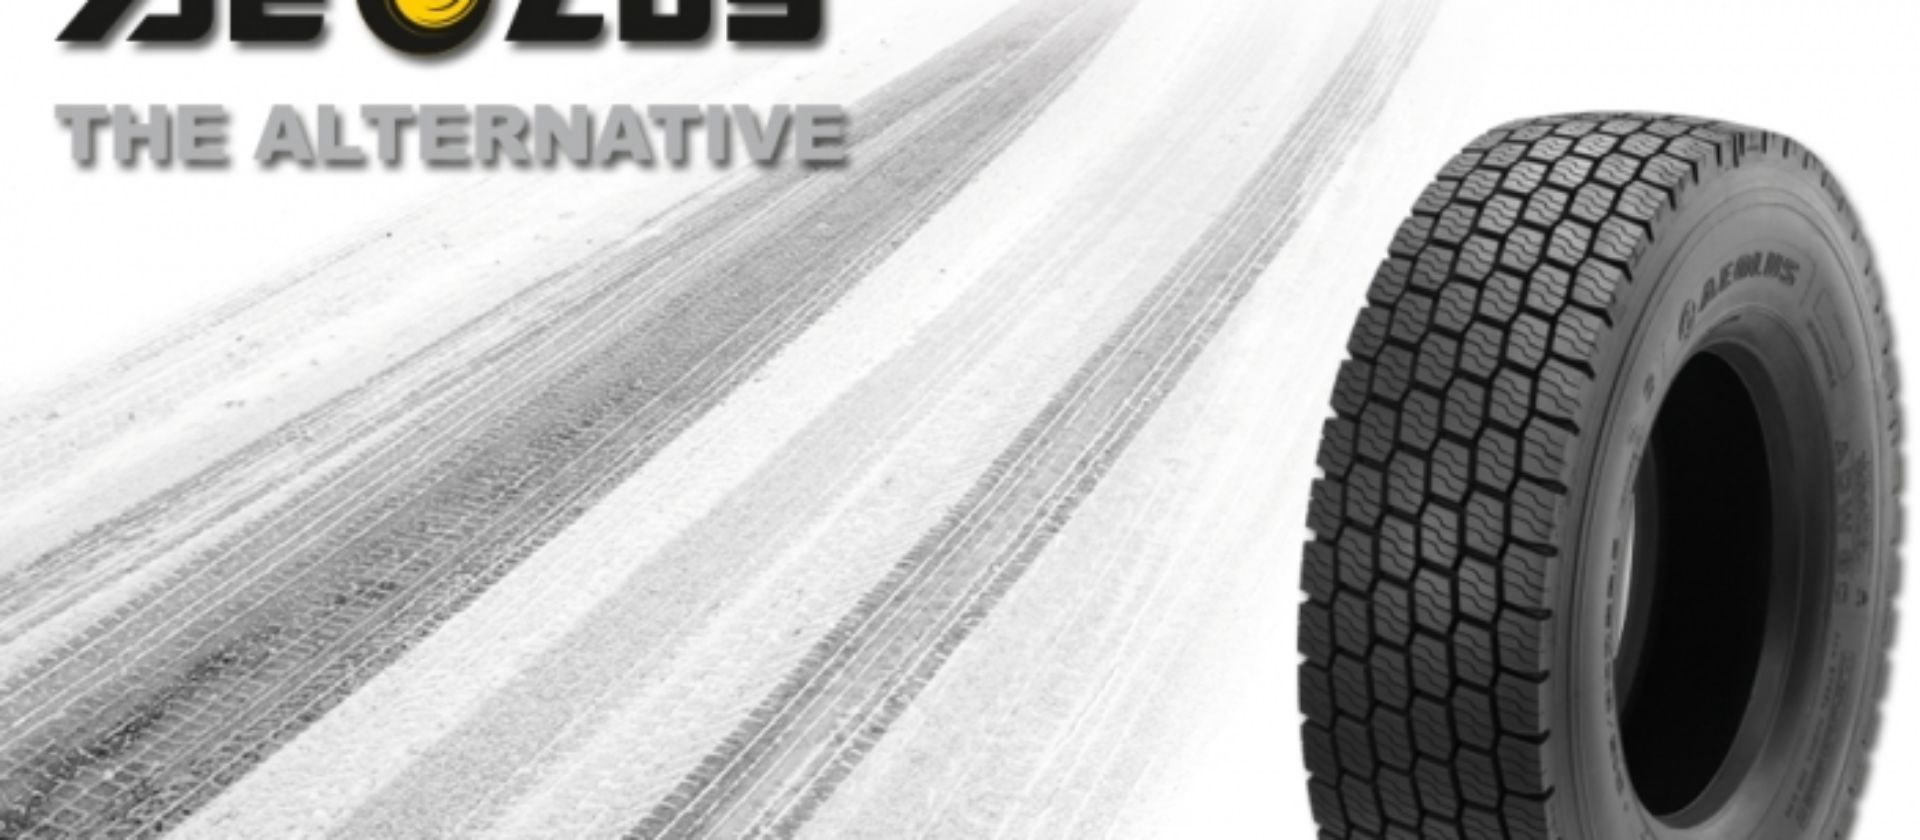 Aeolus now has a winter tyre for drive axles and steering axles